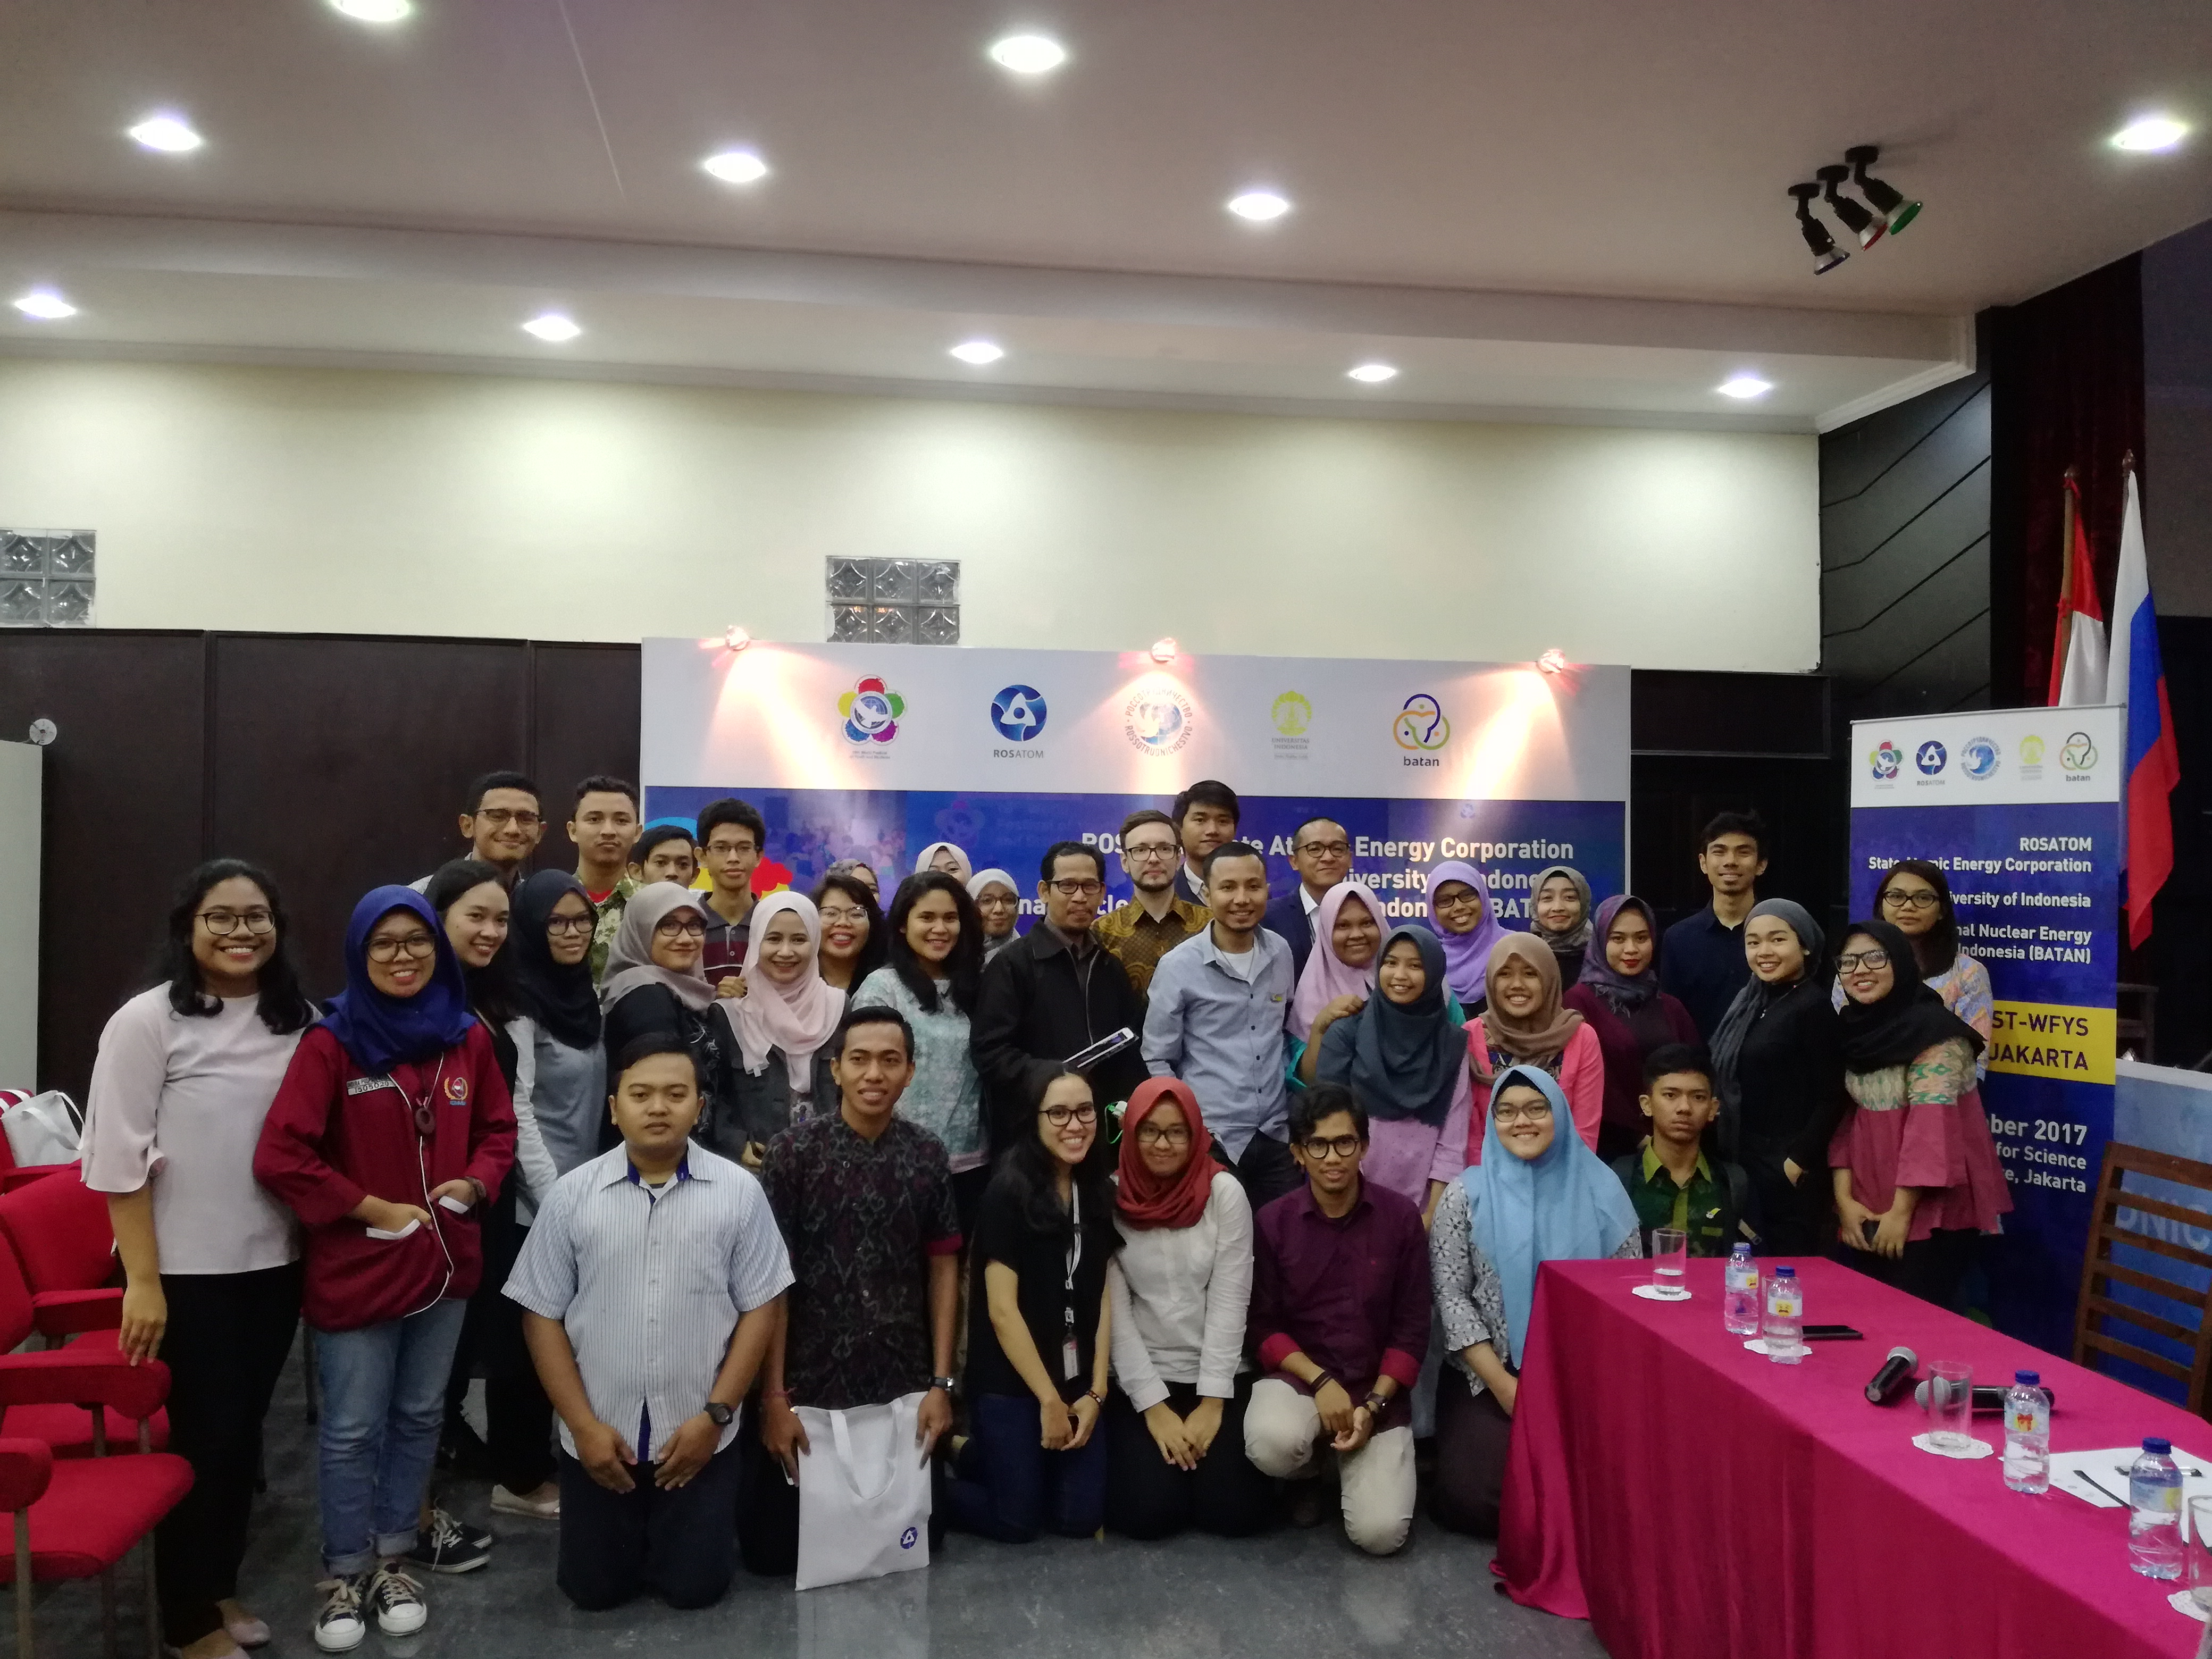 ROSATOM, University of Indonesia and National Nuclear Agency of Indonesia held a Session in Jakarta in the Wake of World Festival of Youth and Students